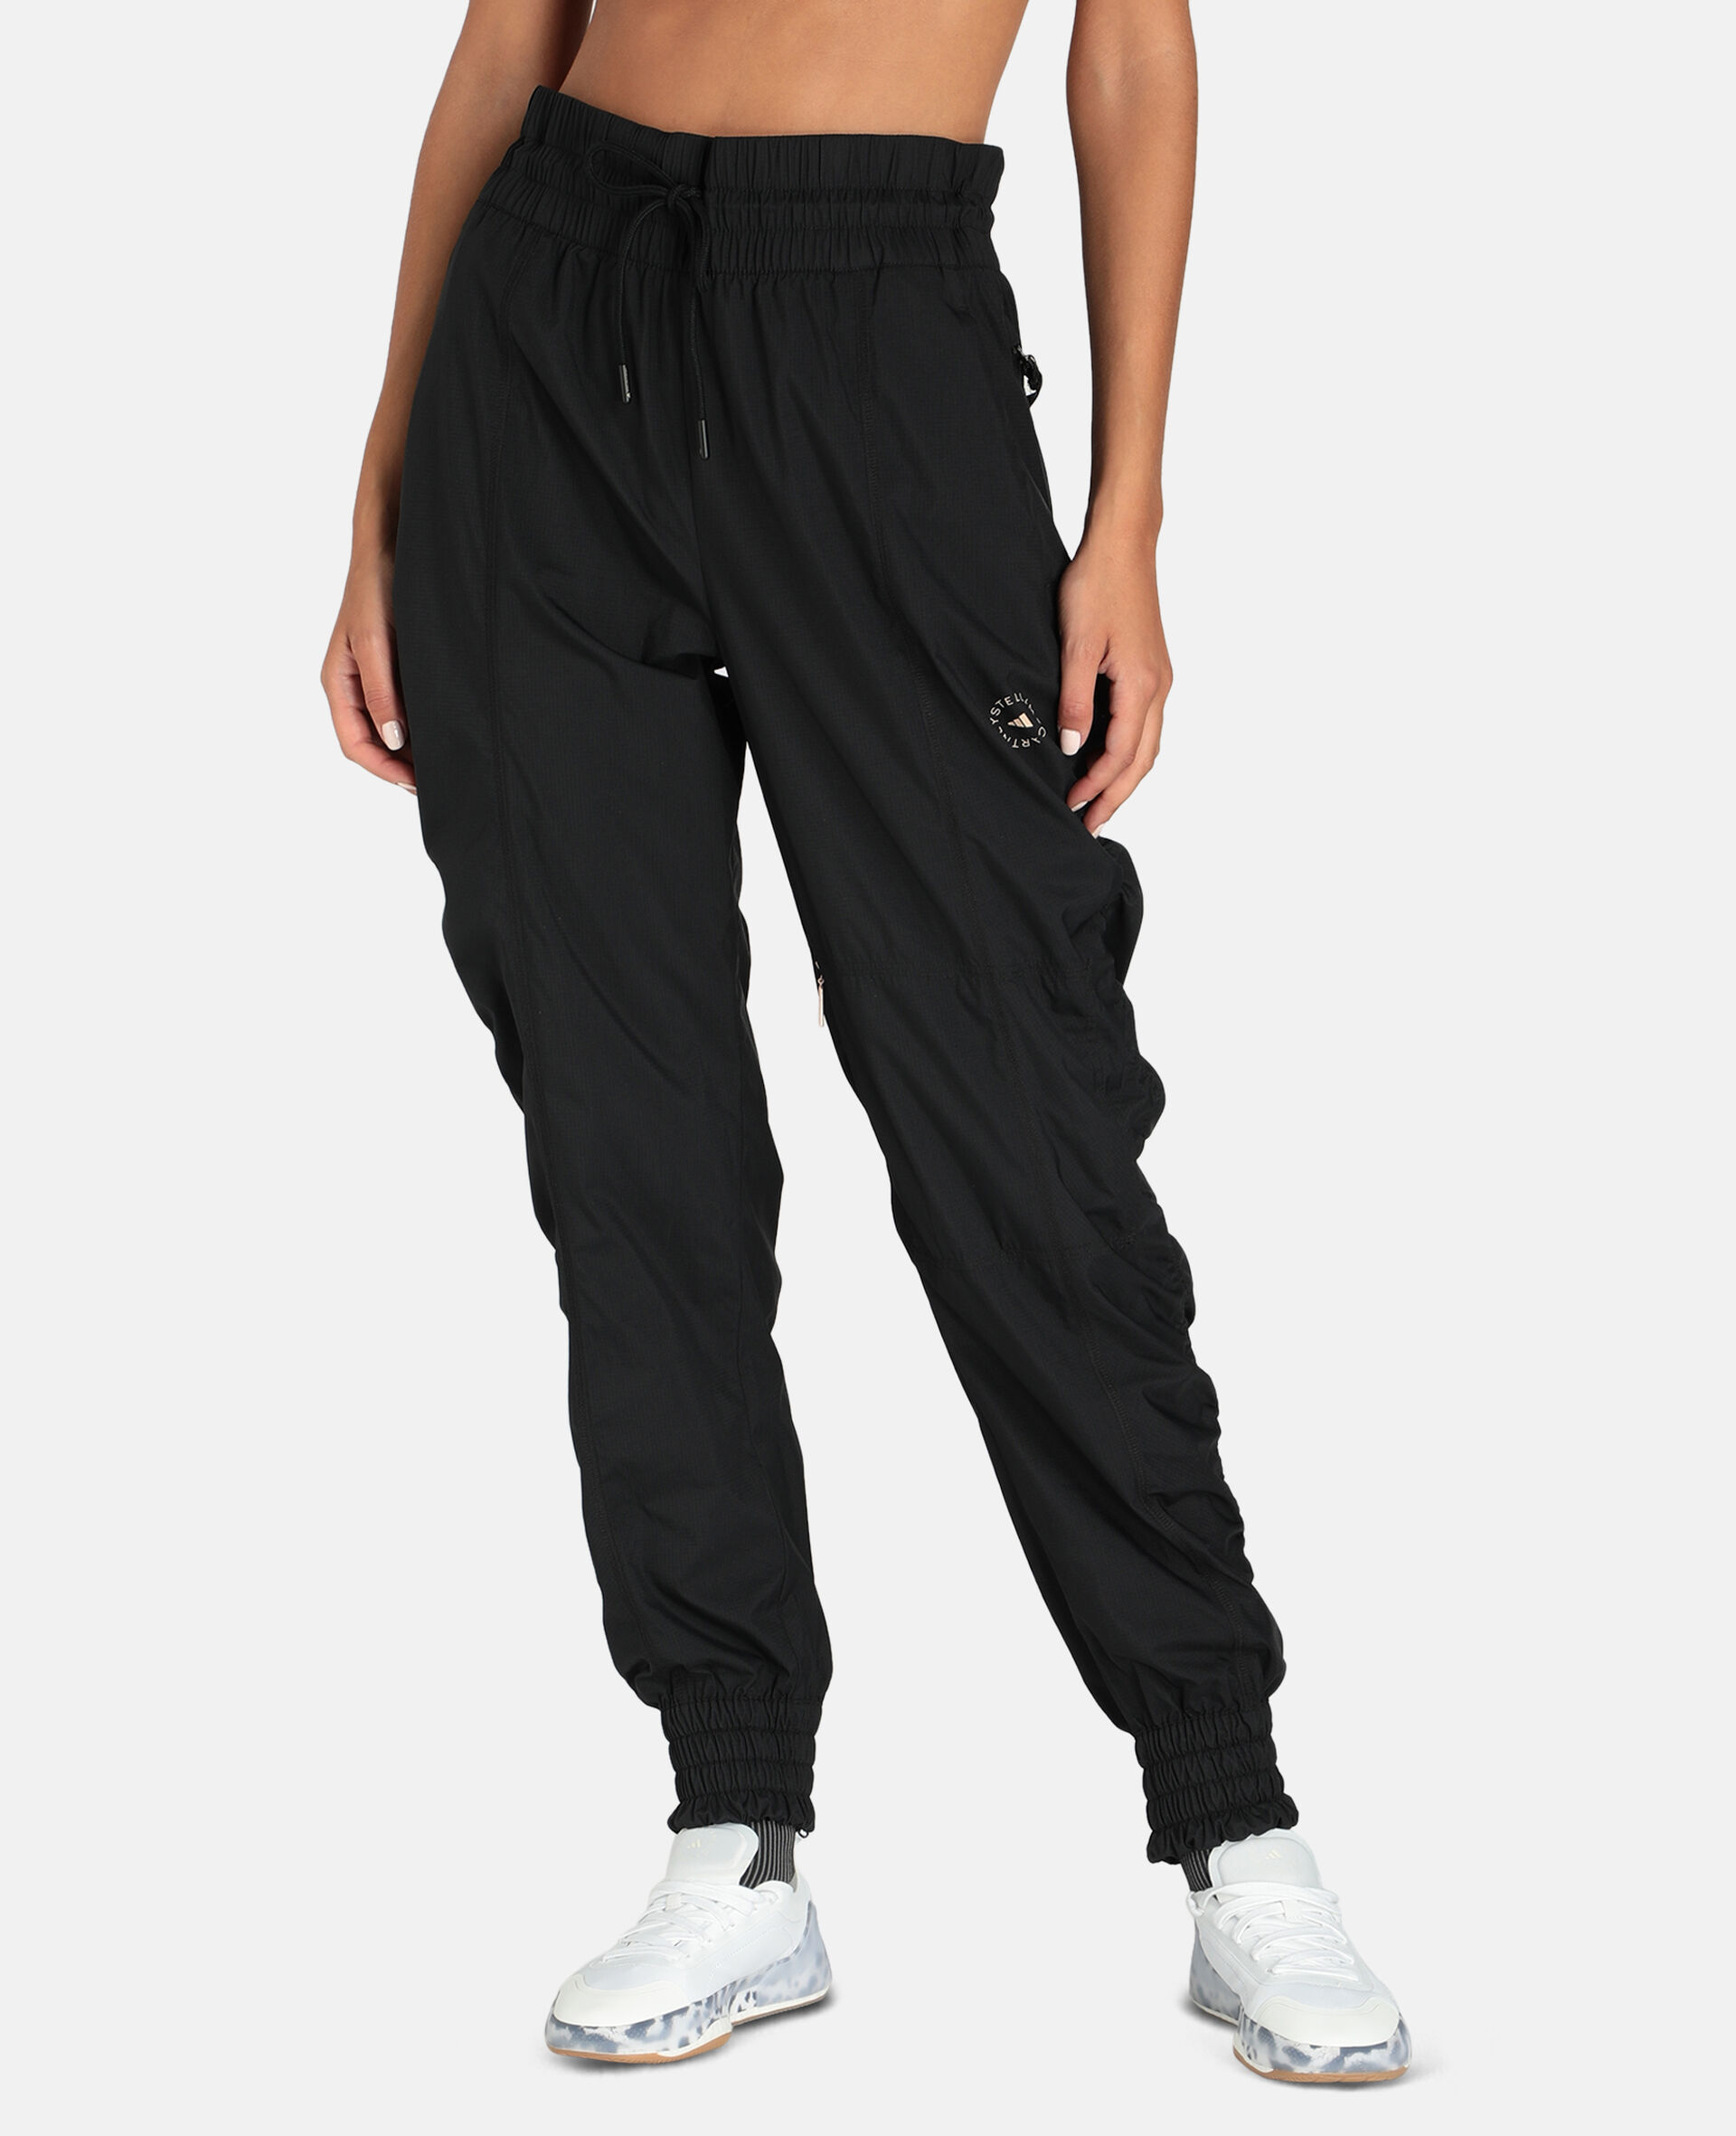 Black Woven Training Trousers-Black-large image number 4